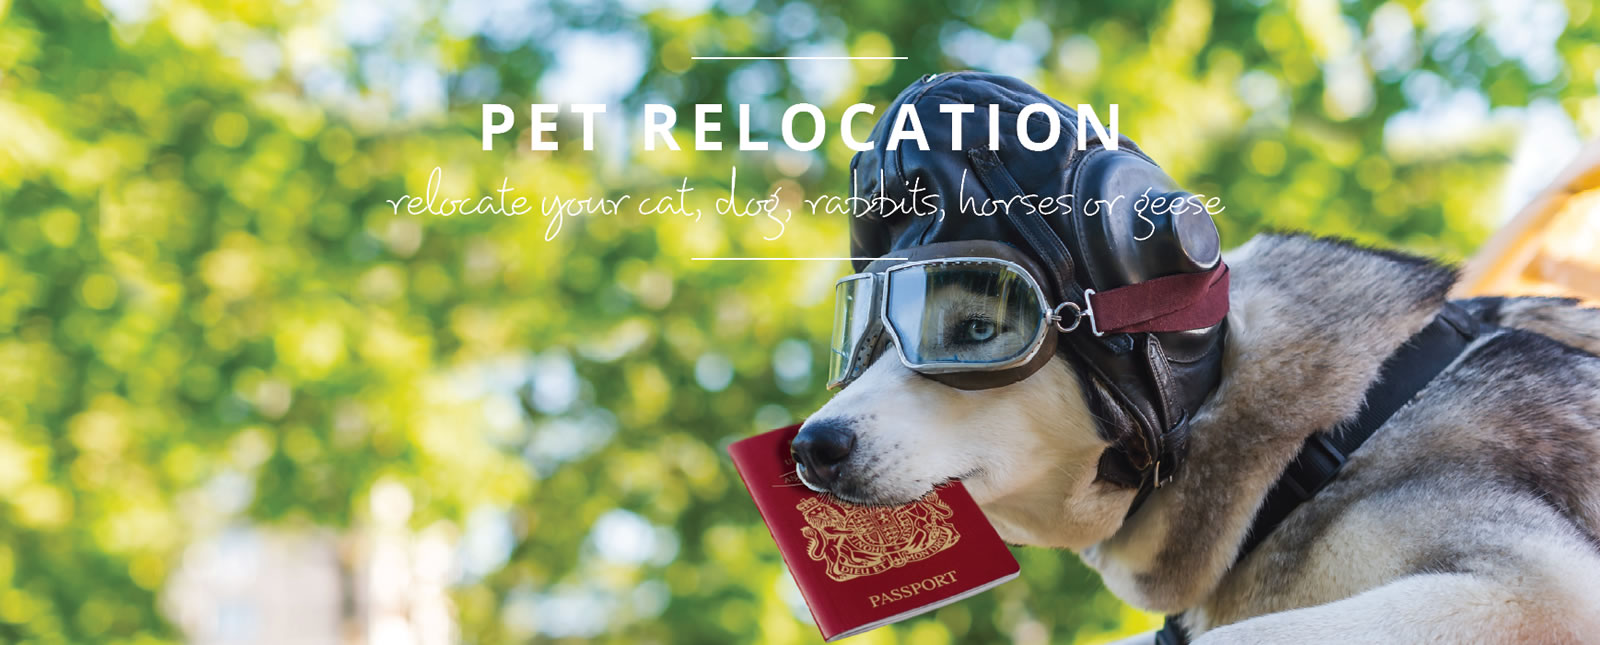 Pet Relocation Service